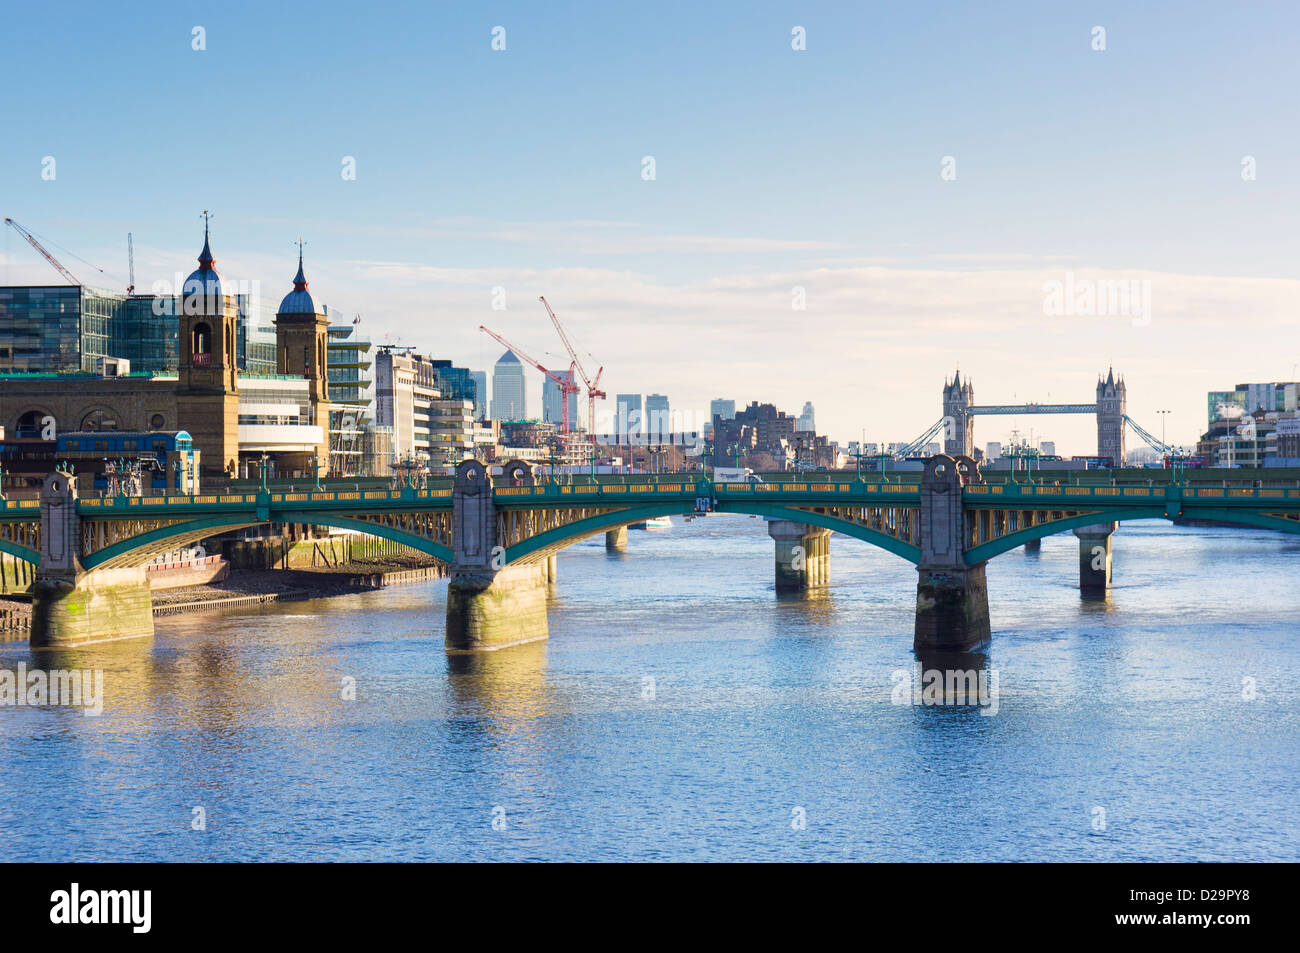 Southwark Bridge over the River Thames, London, England, UK - with Tower Bridge in the background - Stock Image